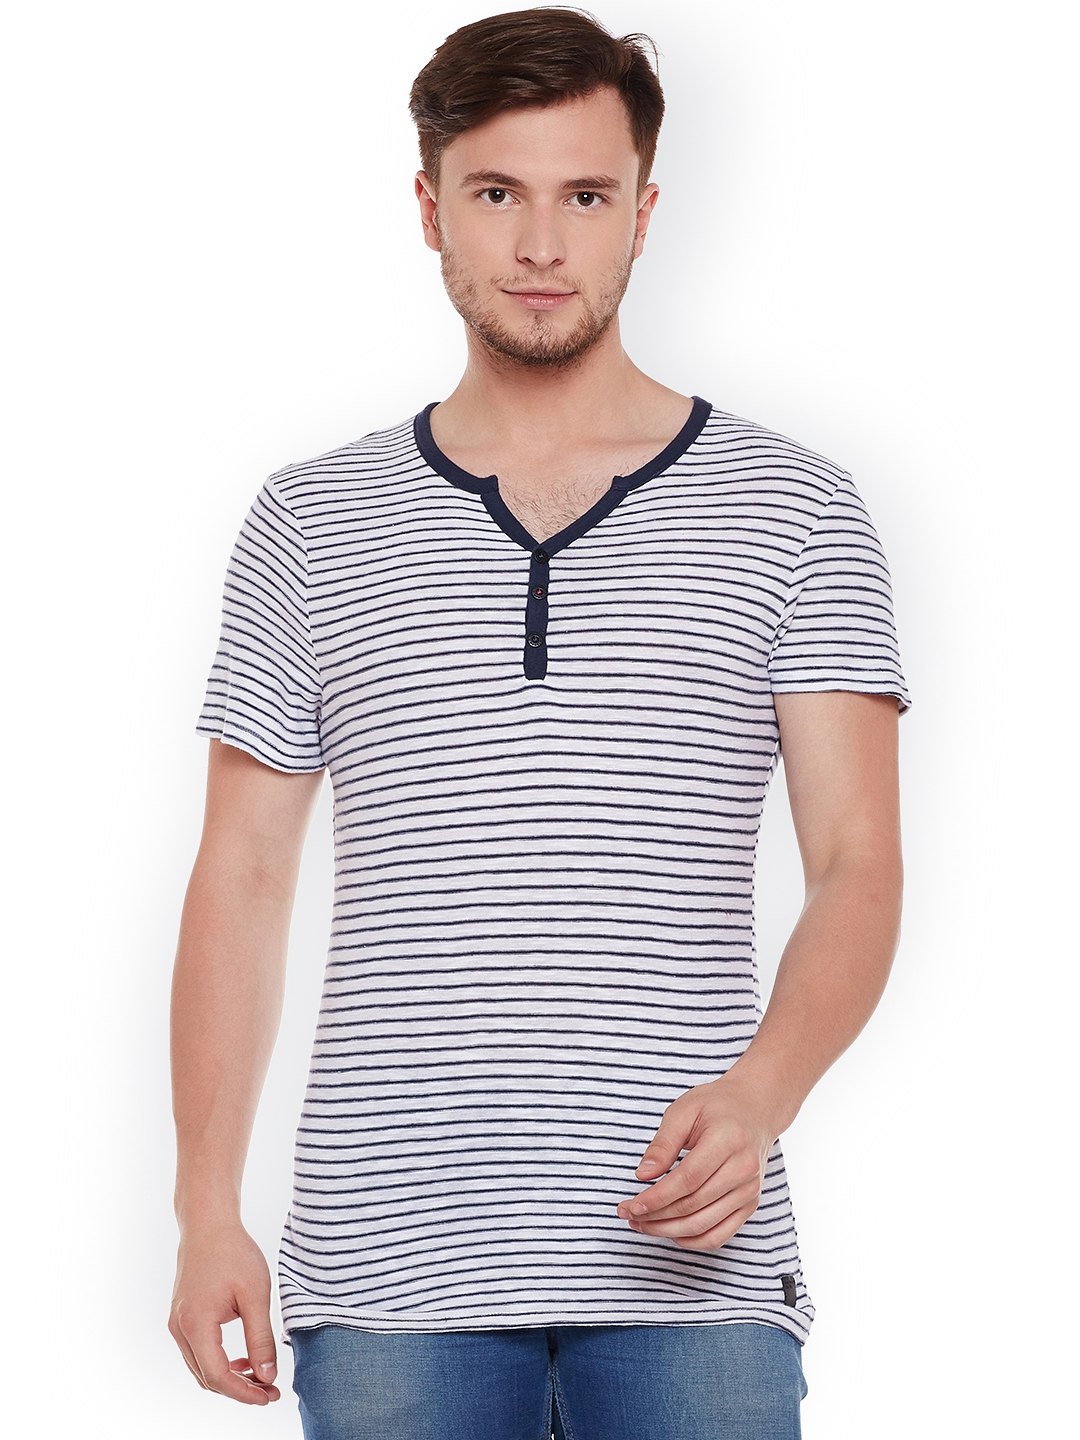 Tom Railor Buy Tom Tailor Men White Blue Striped Henley Neck T Shirt